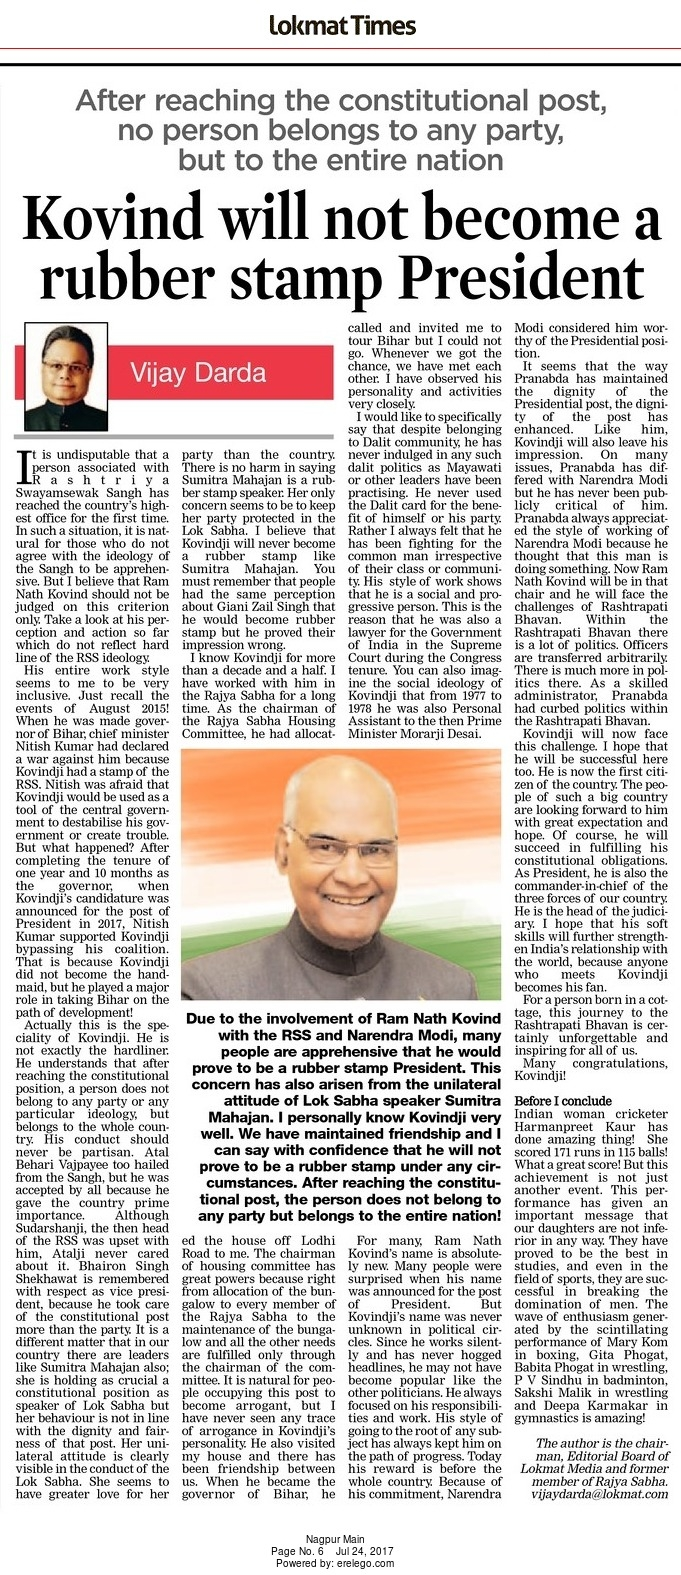 Kovind will not become a rubber stamp President